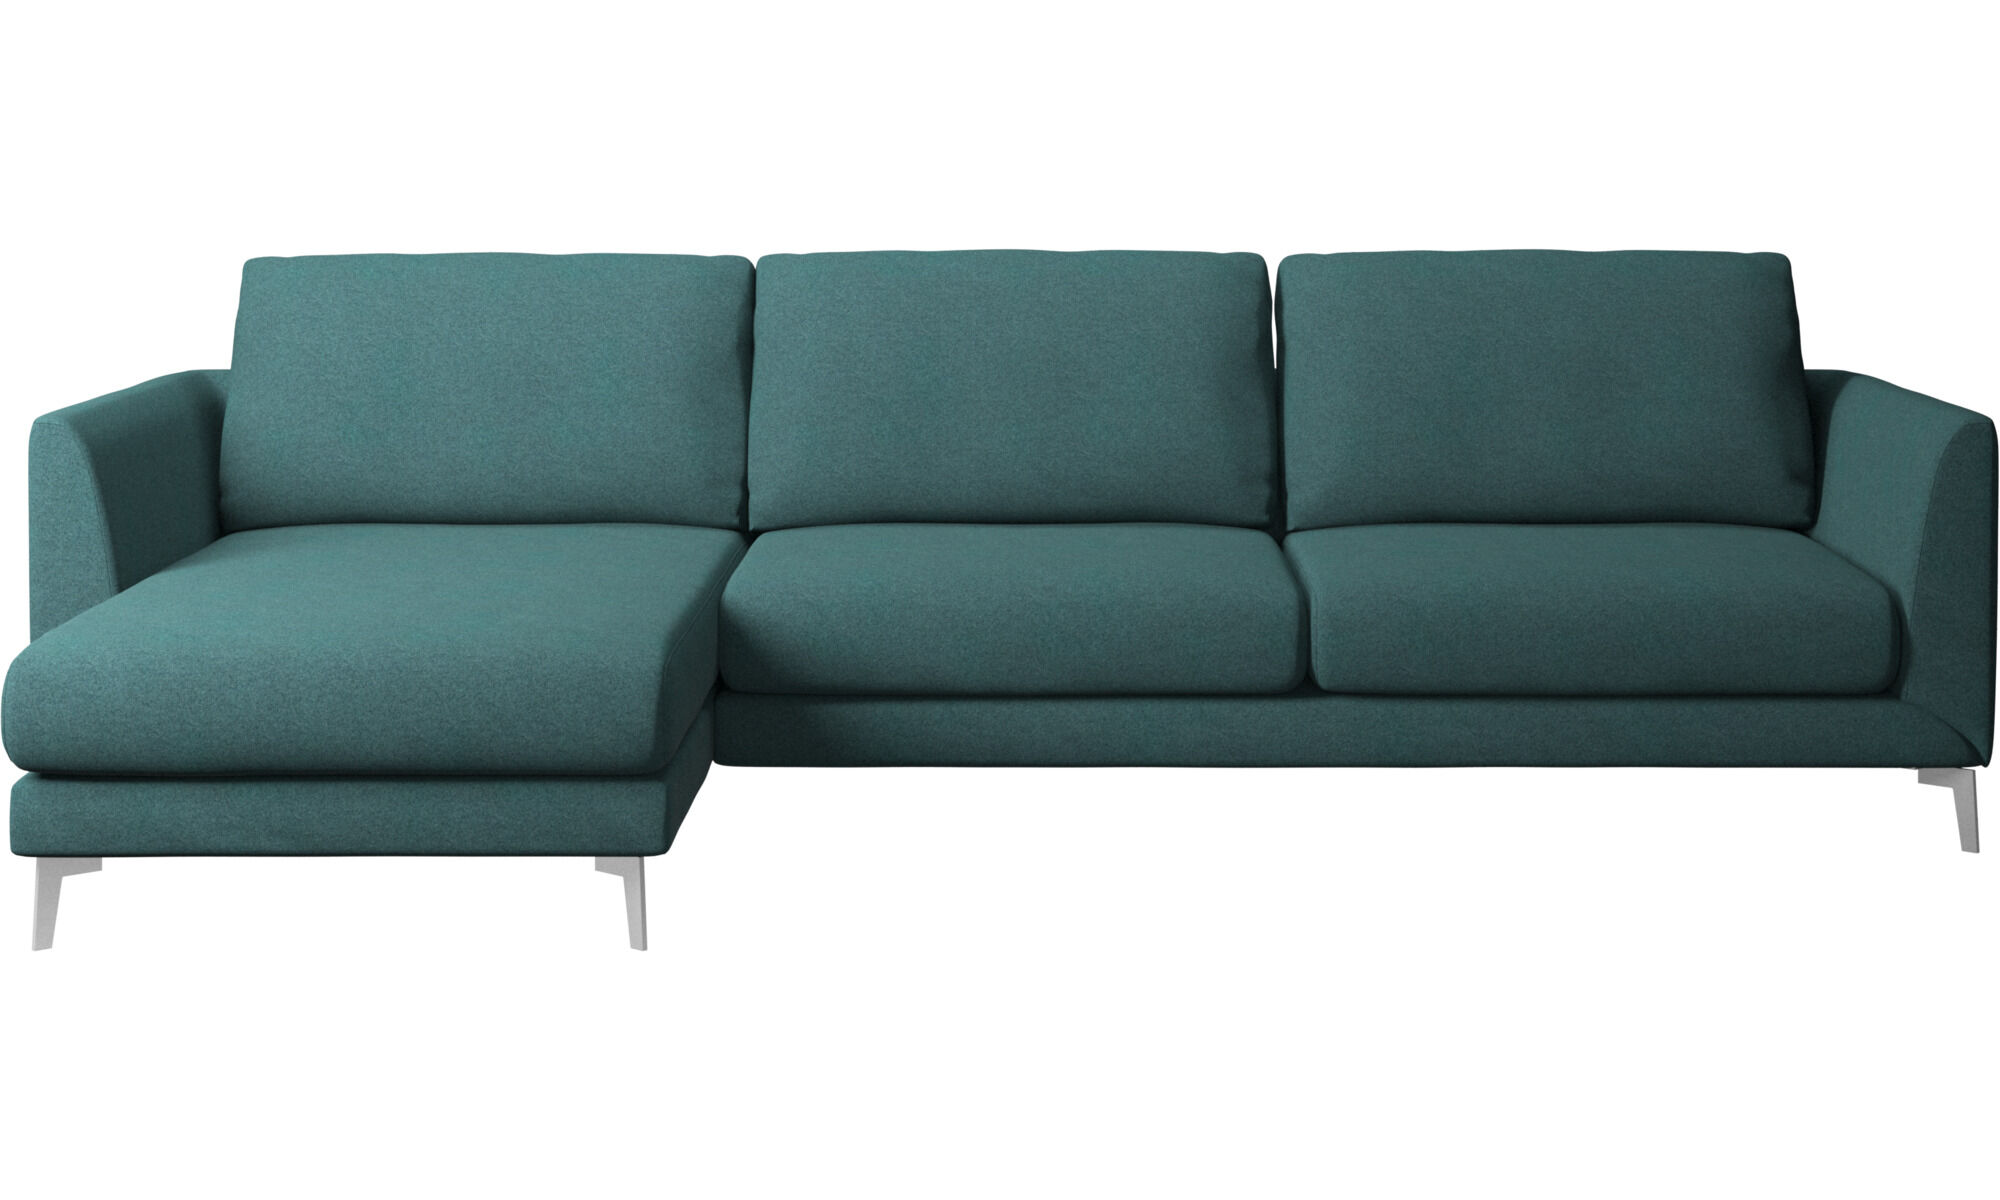 chaise lounge sofas fargo sofa with resting unit green fabric